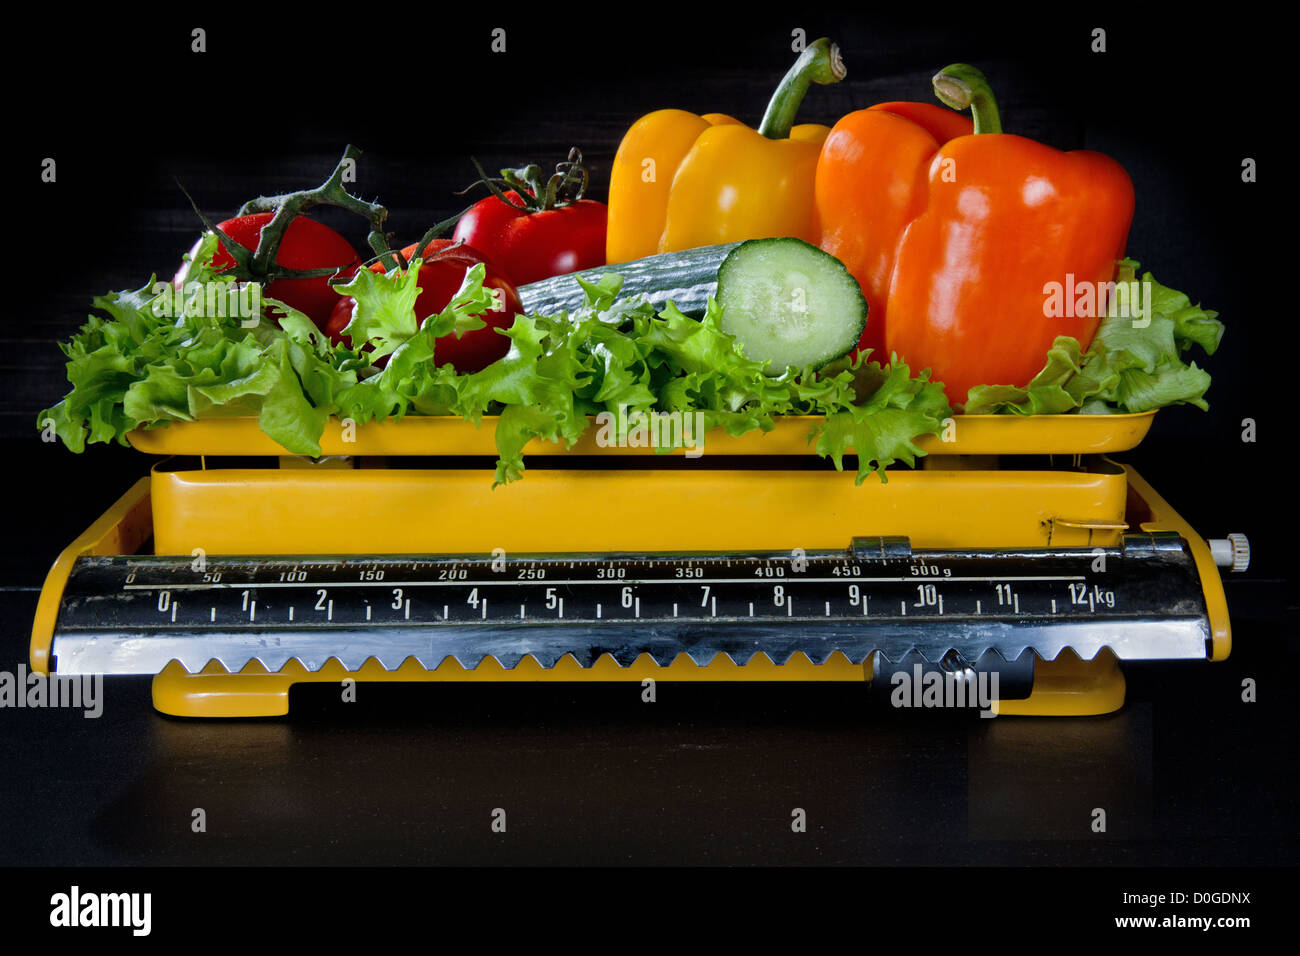 Fresh vegetables on an old yellow kitchen scale, with black background - weight loss concept - Stock Image